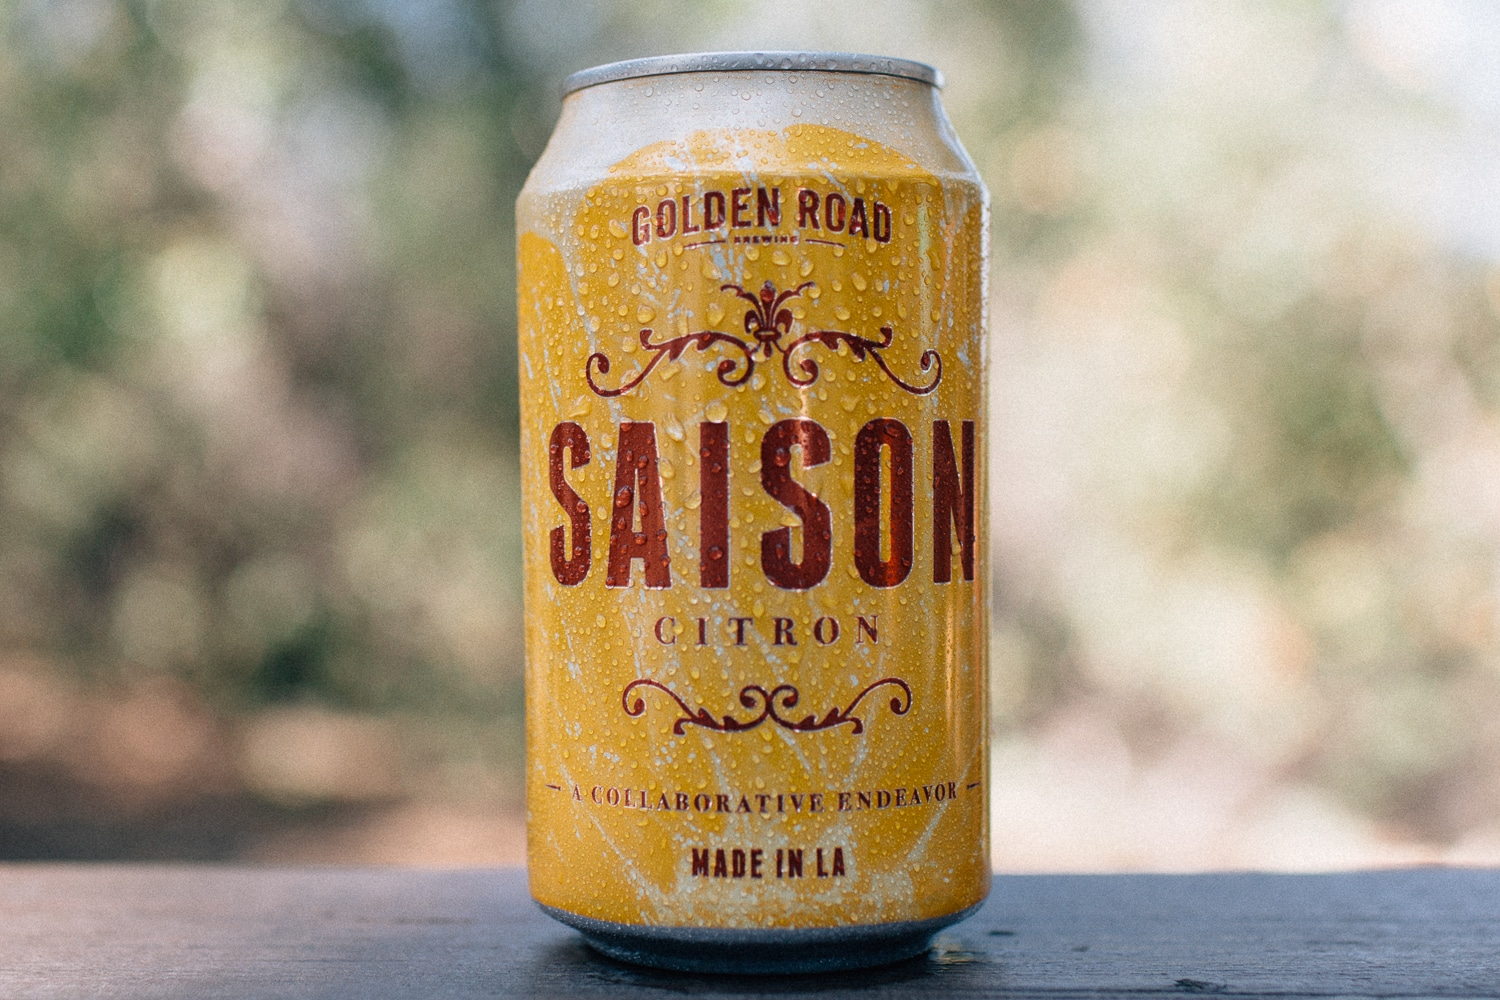 Saison Citron by Golden Road